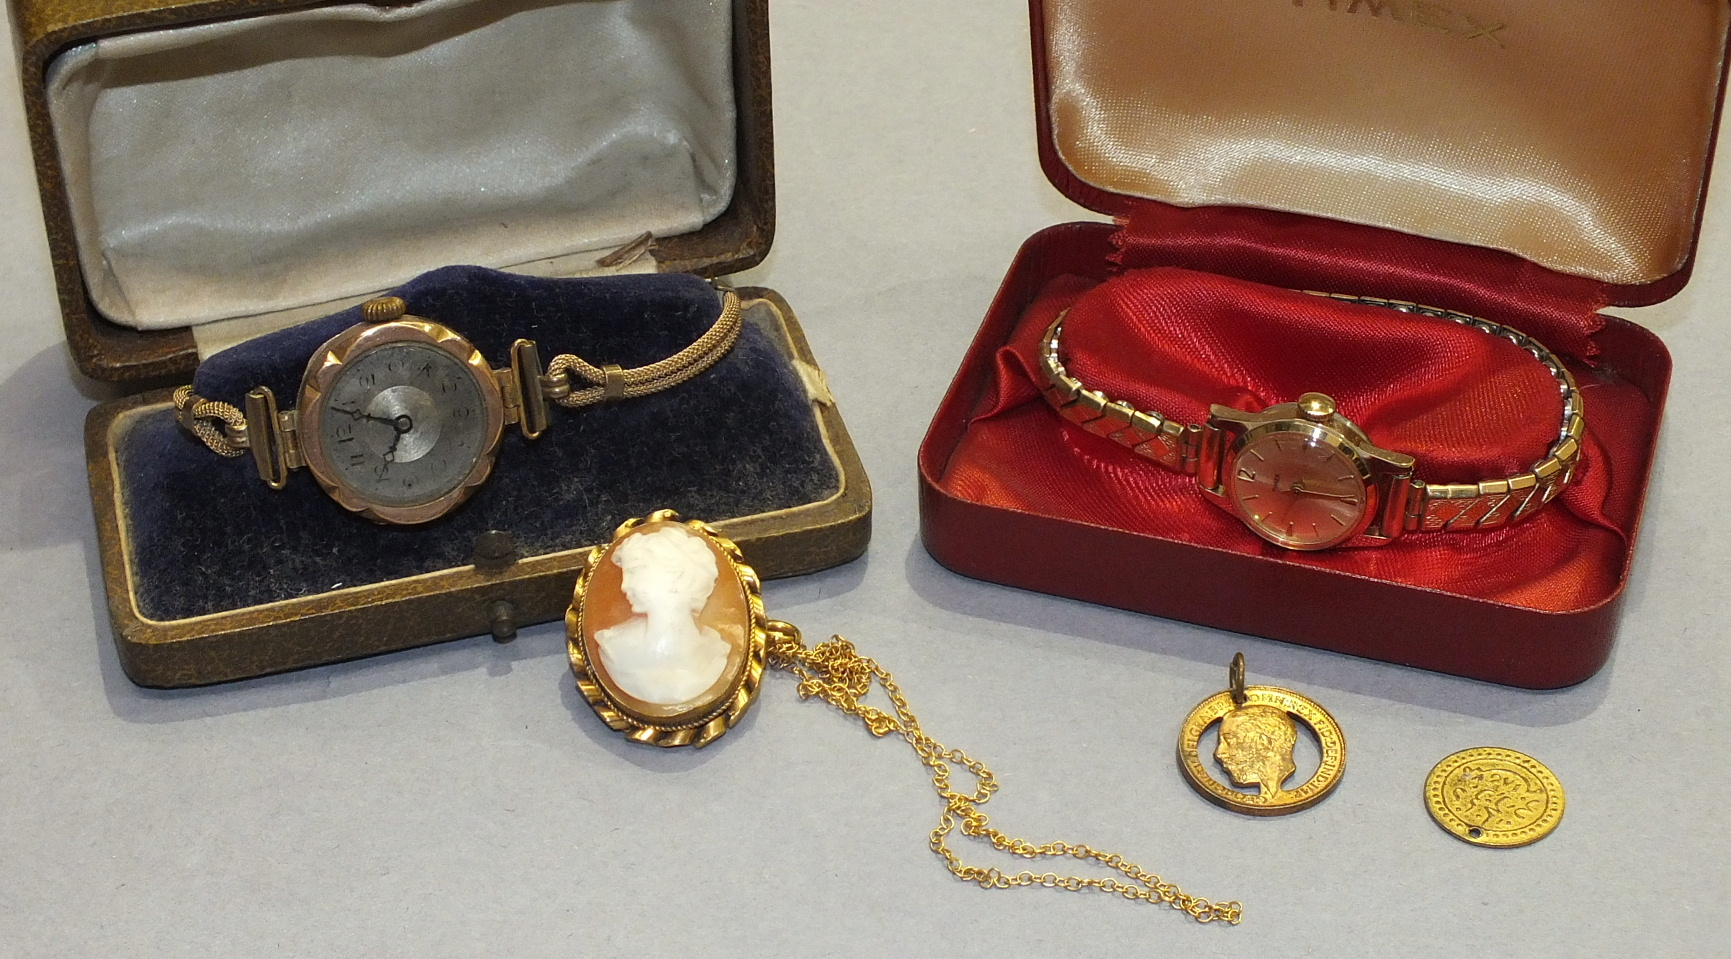 Lot 249 - A shell cameo brooch/pendant on 9ct gold neck chain, a ladies 9ct-gold-cased wrist watch, (a/f),